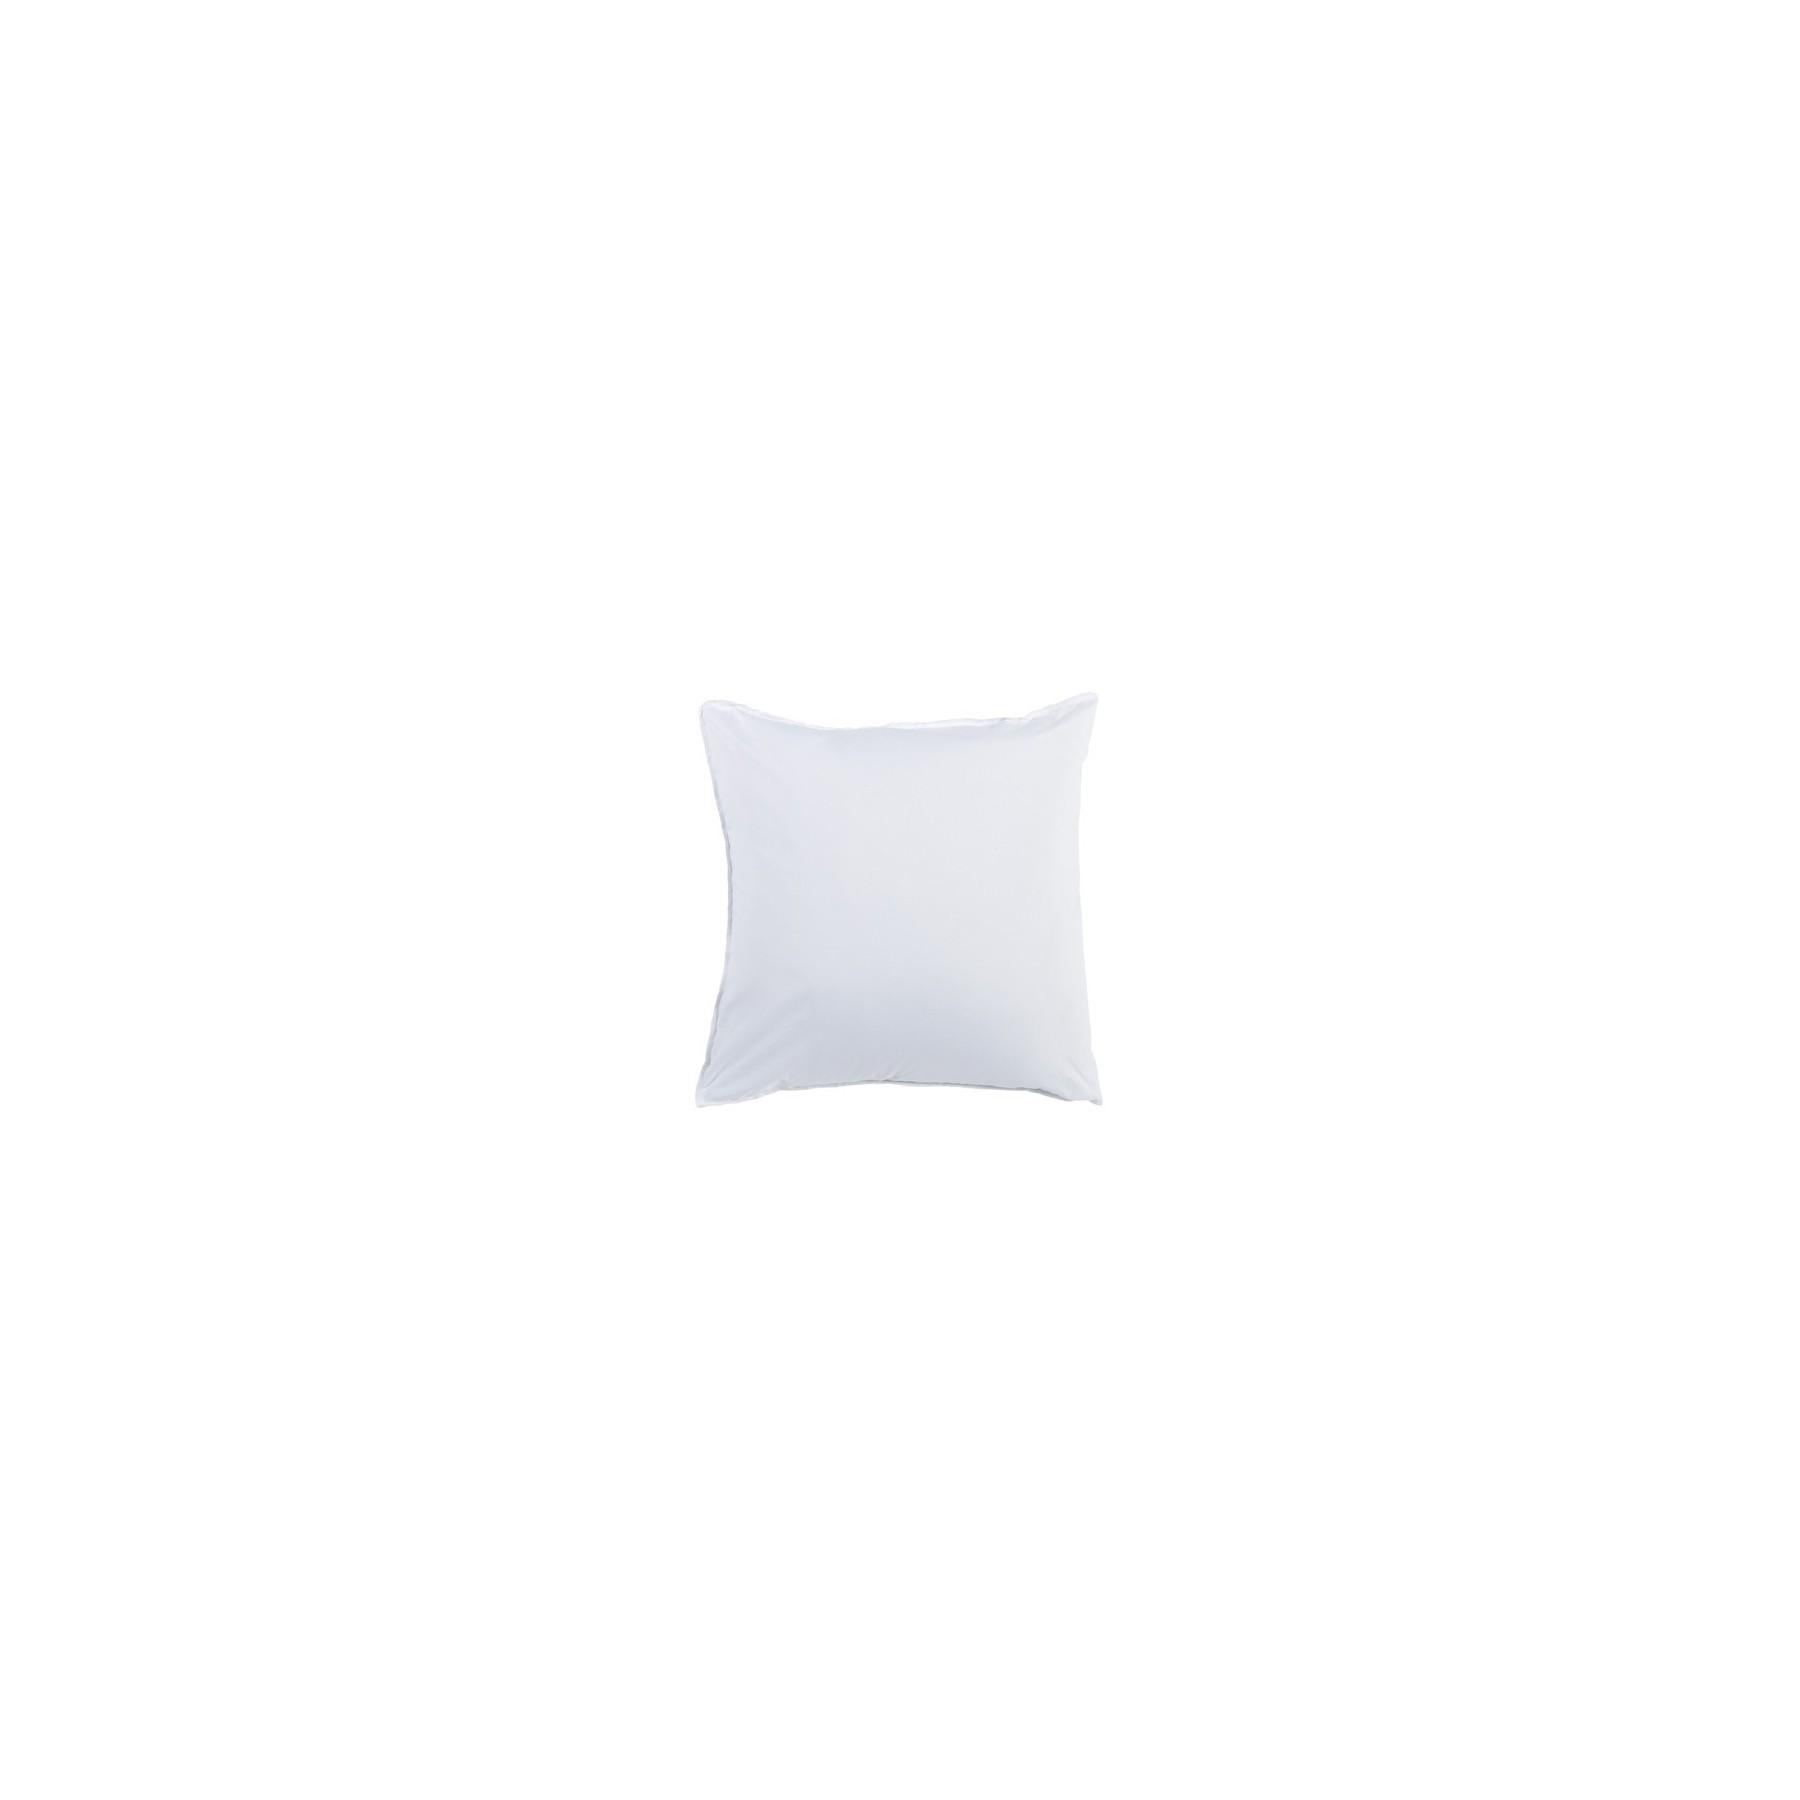 PADDING CUSHION POLYESTER 50X50 CM